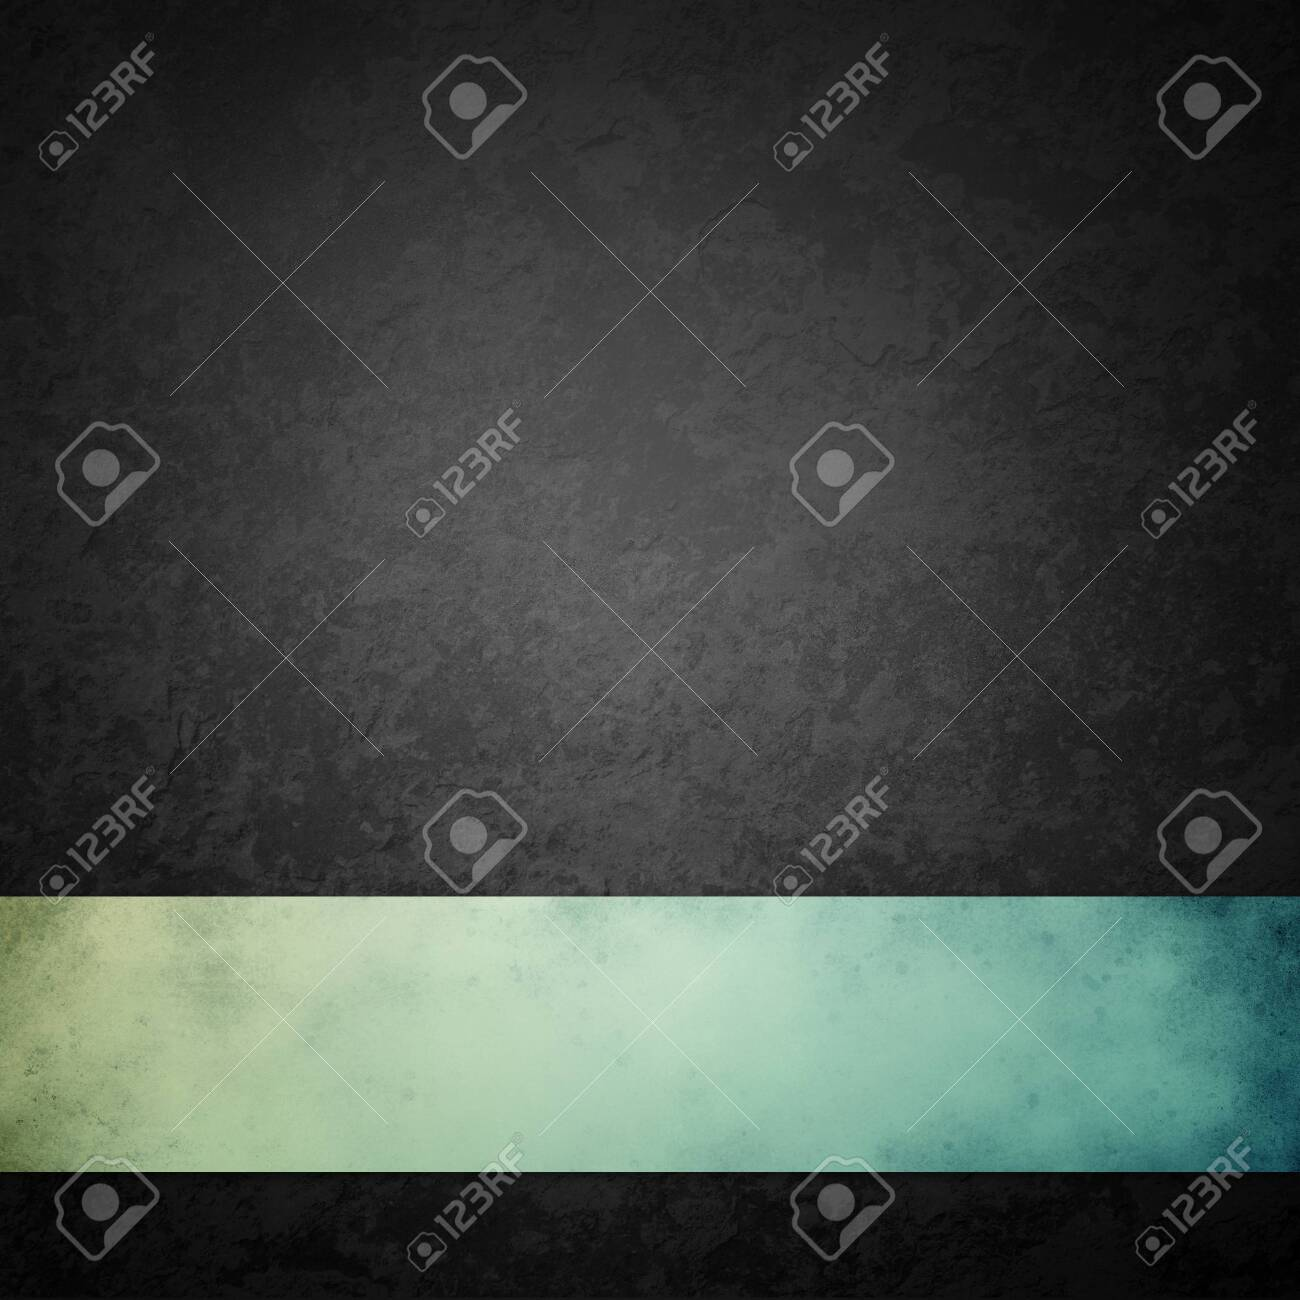 black background with blue green ribbon, distressed vintage grunge texture with marbled black and gray stone or rock design, old dark charcoal color design that is elegant and classy - 131128160